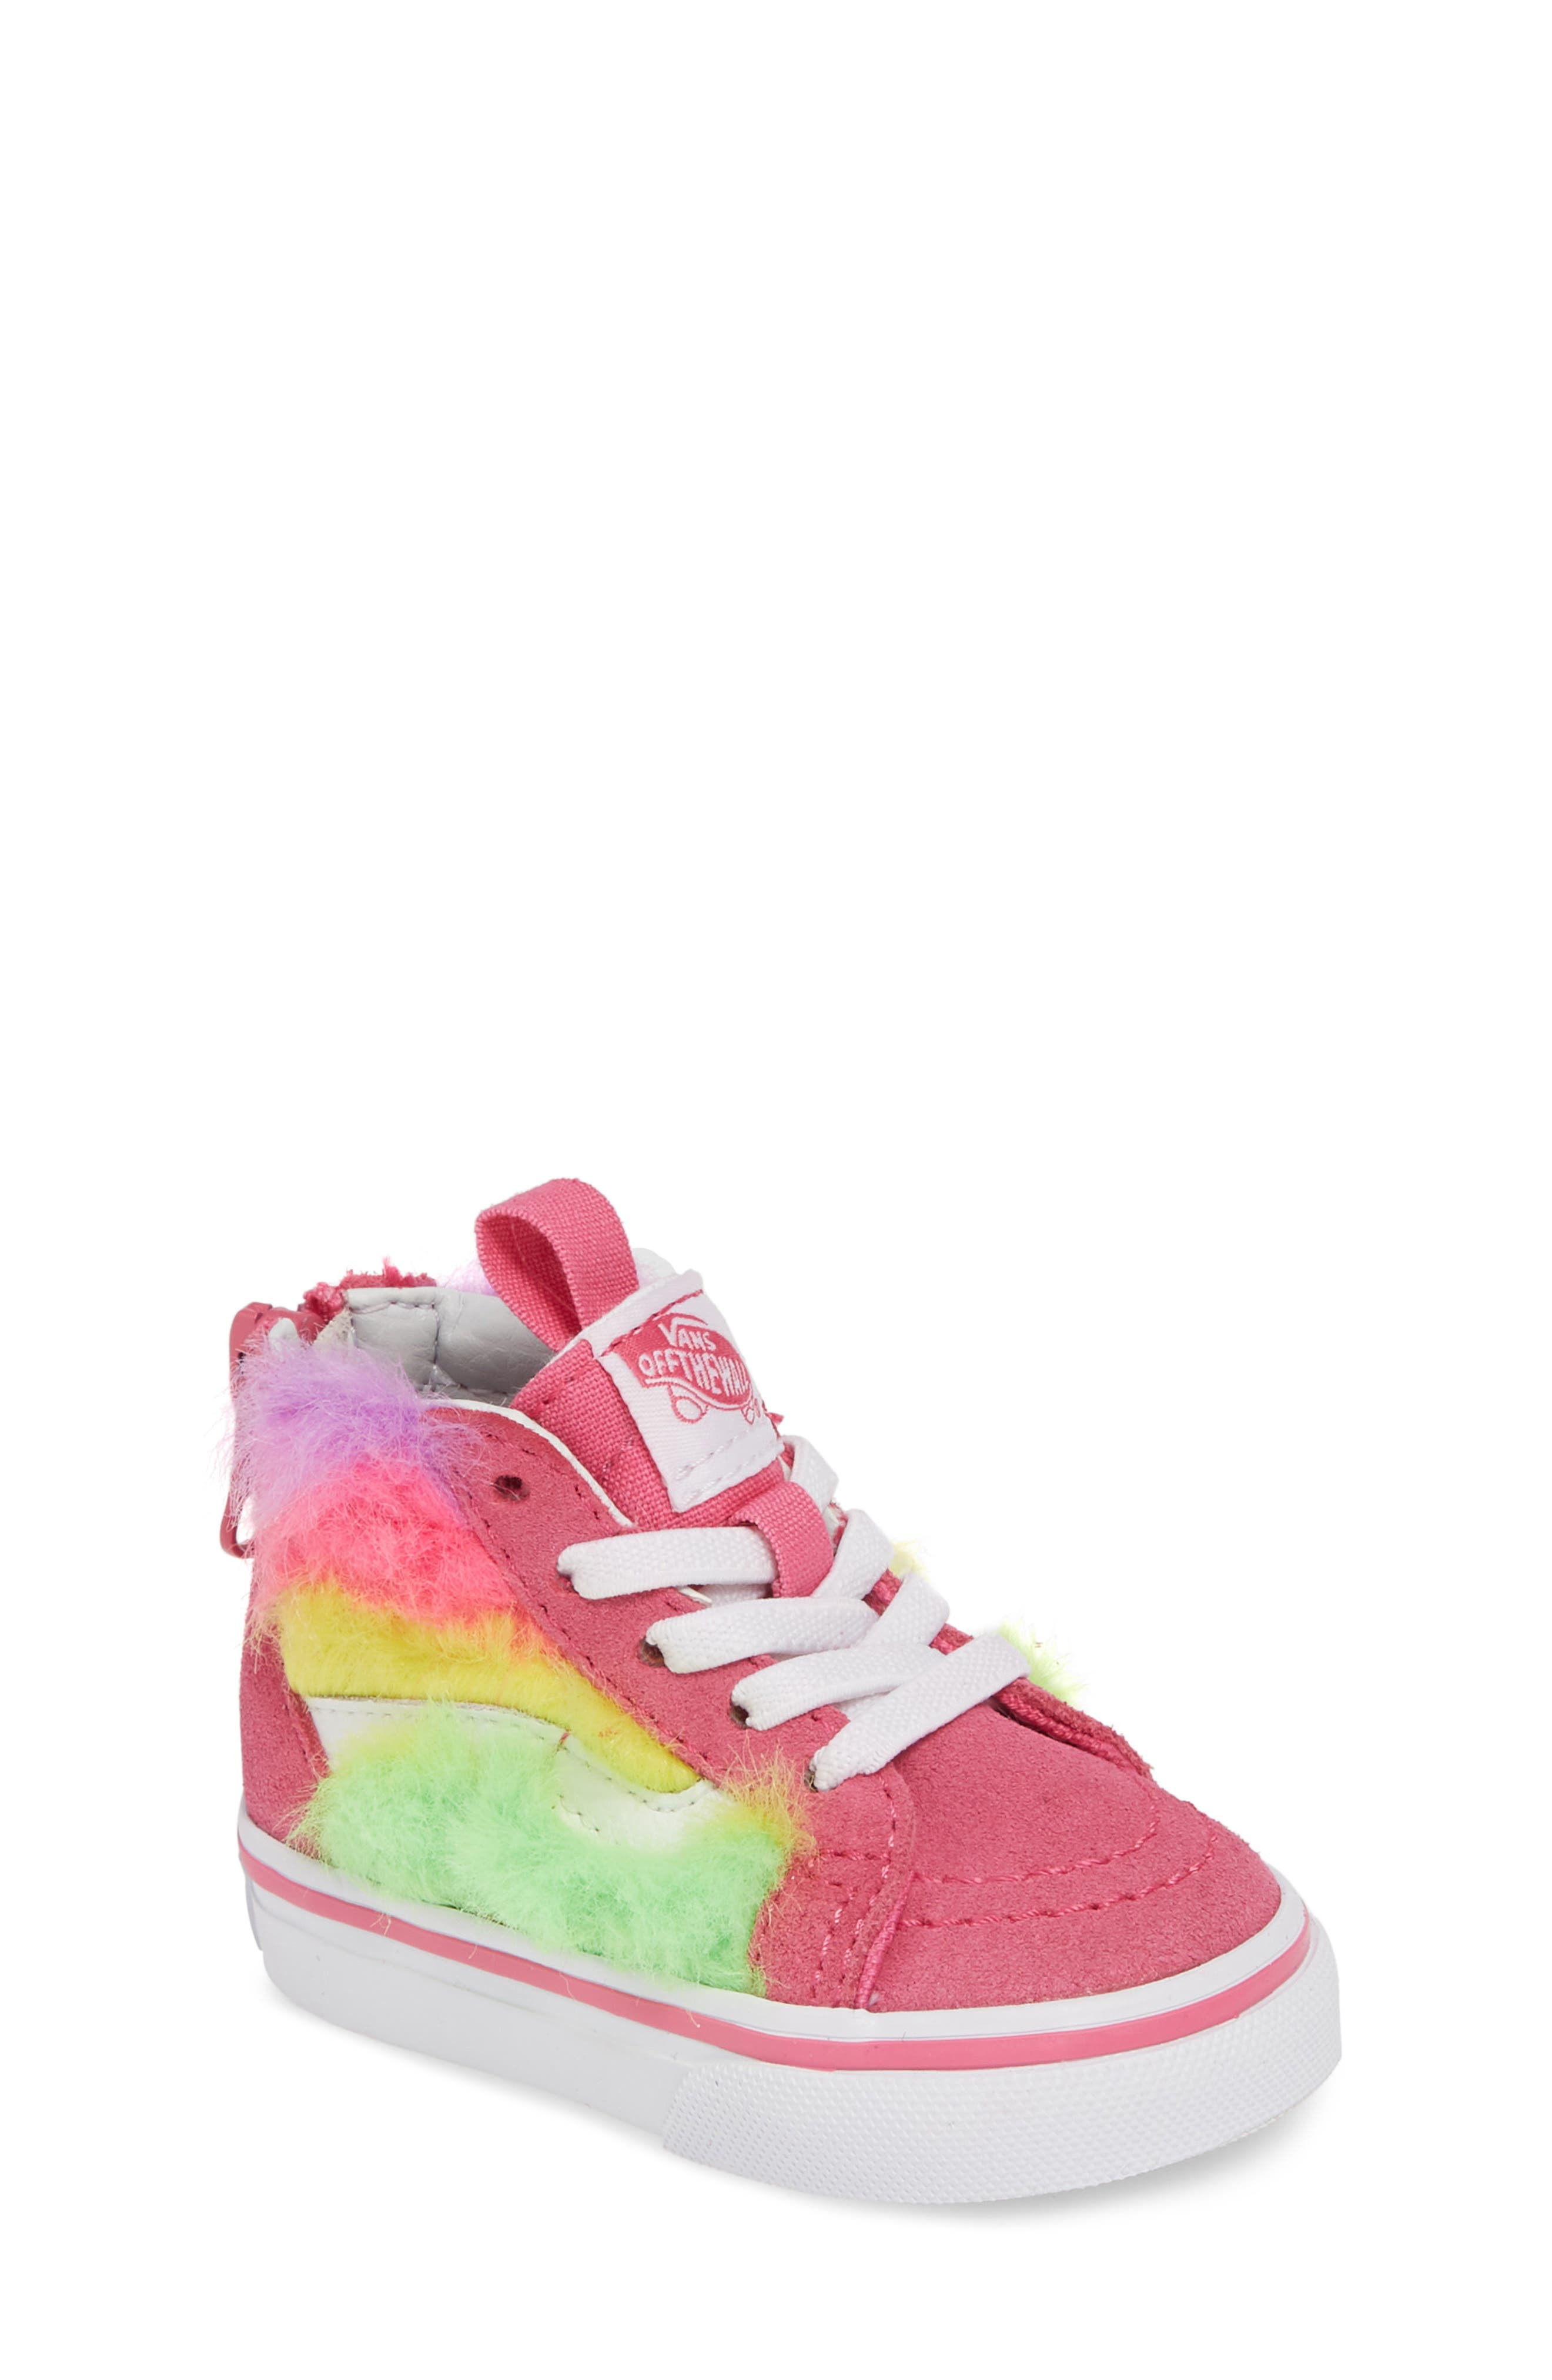 Vans - Girls Sneakers   Athletic Shoes - Kids  Shoes and Boots to ... b31c44b9f